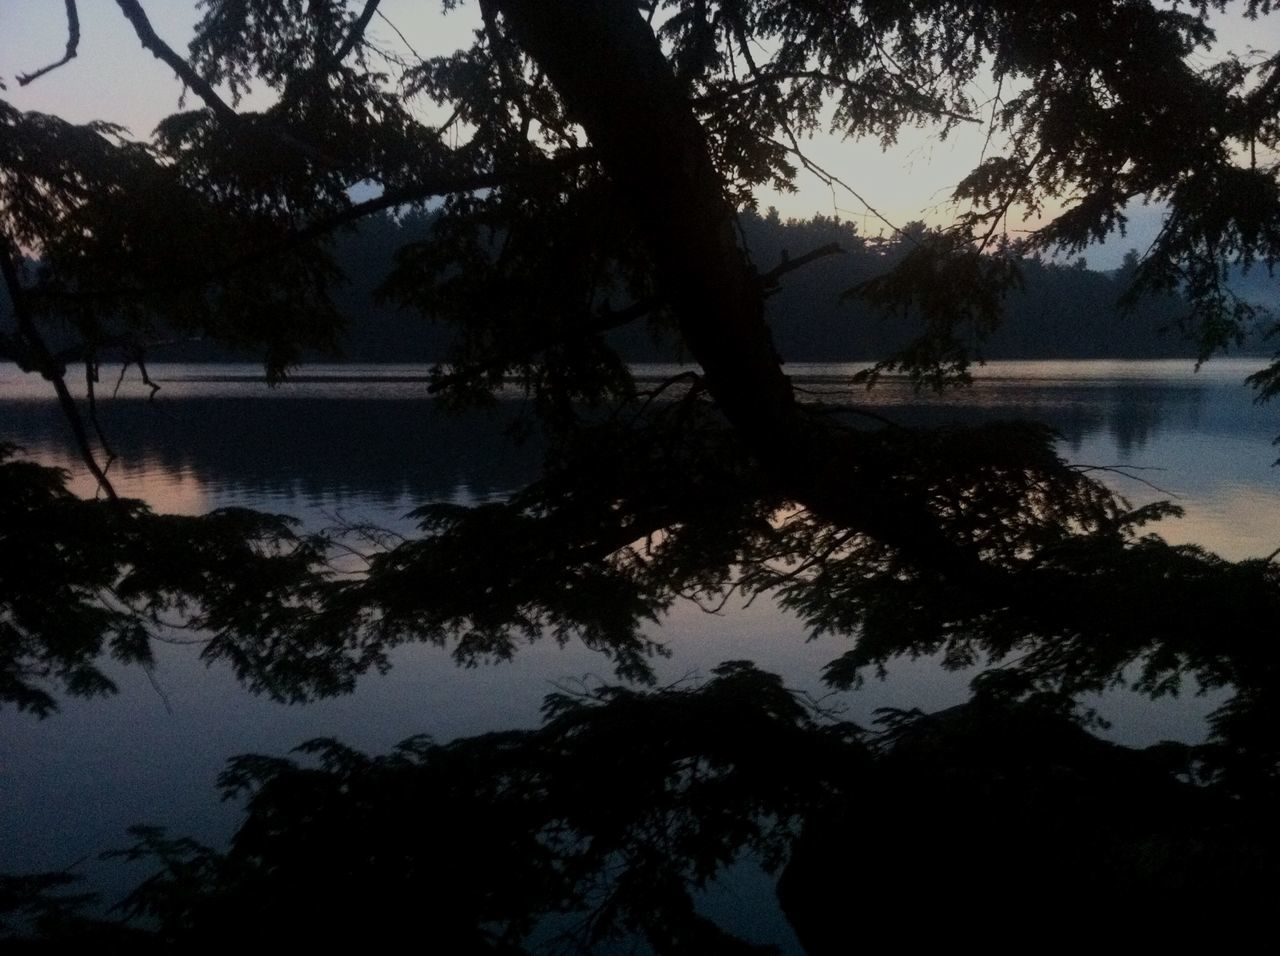 tree, water, lake, beauty in nature, nature, silhouette, scenics, reflection, tranquil scene, tranquility, outdoors, no people, branch, tree trunk, growth, sky, day